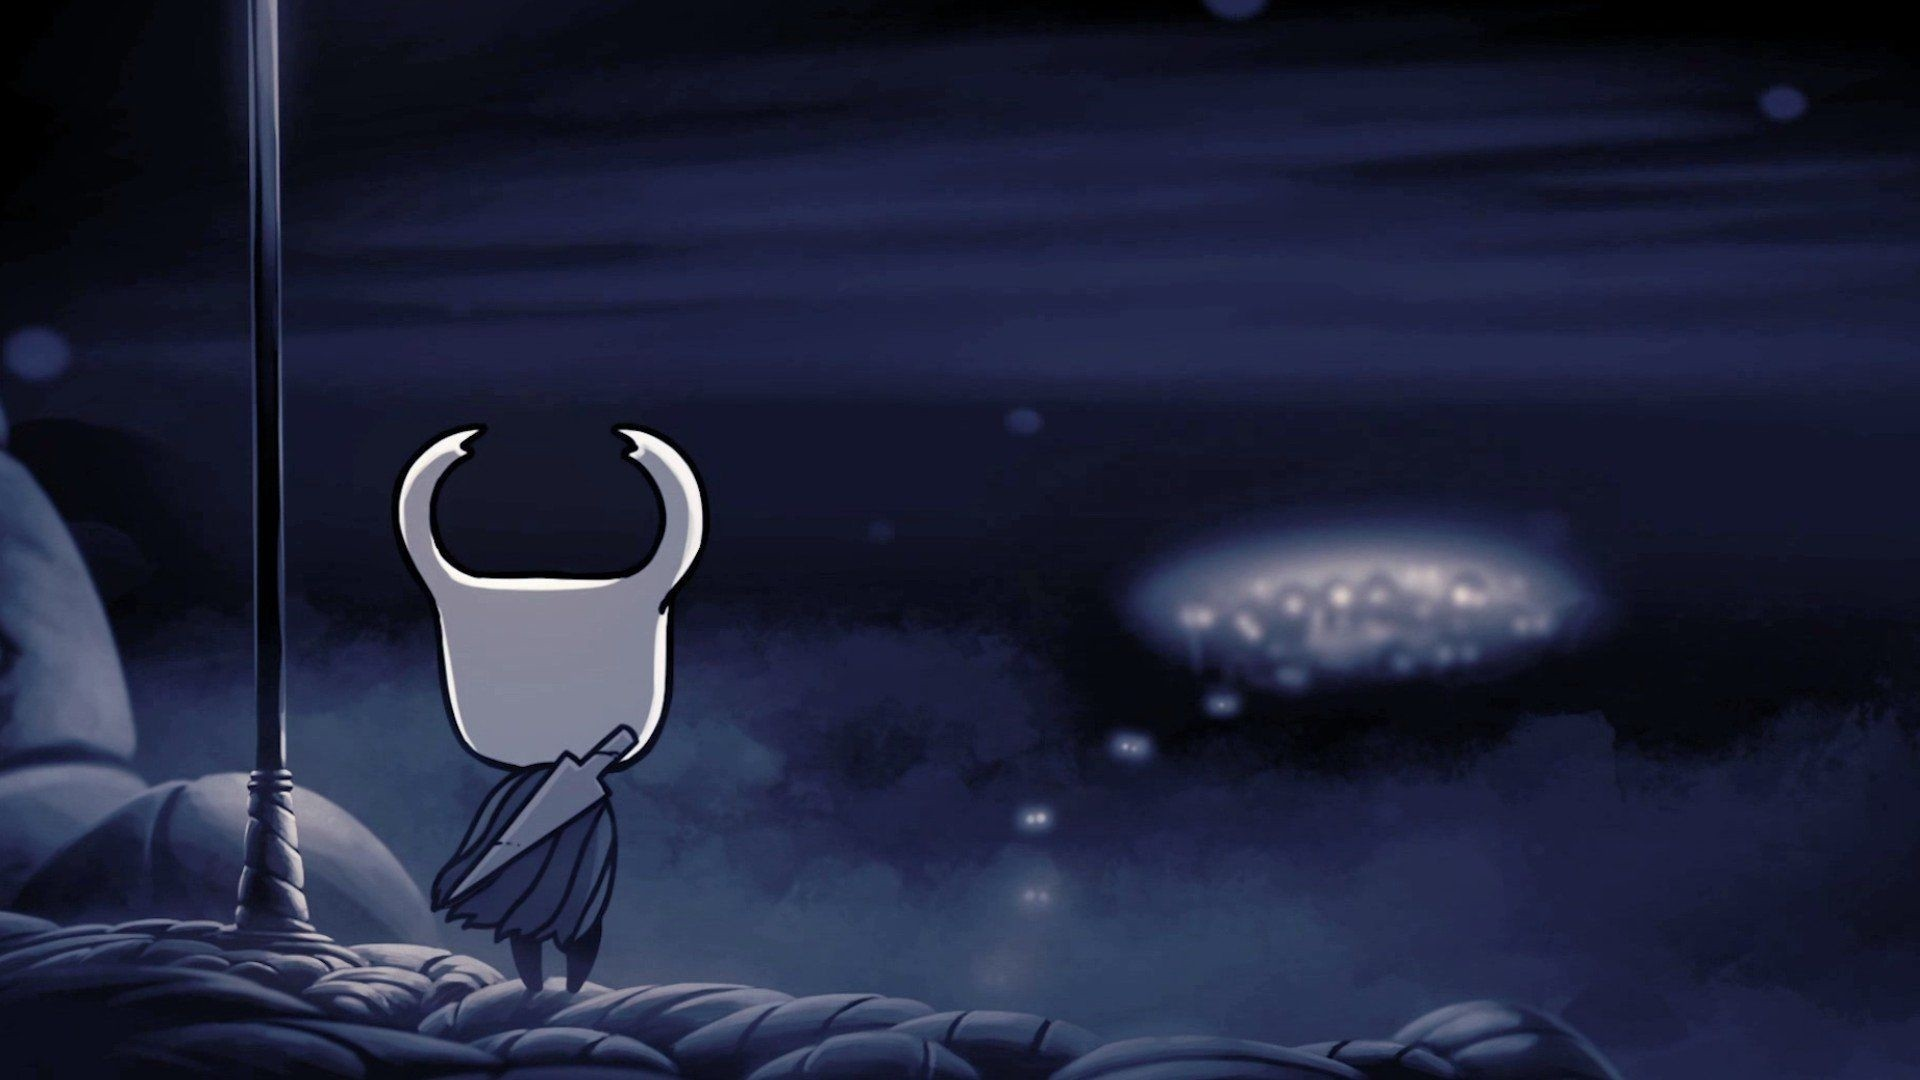 Hollow Knight Background